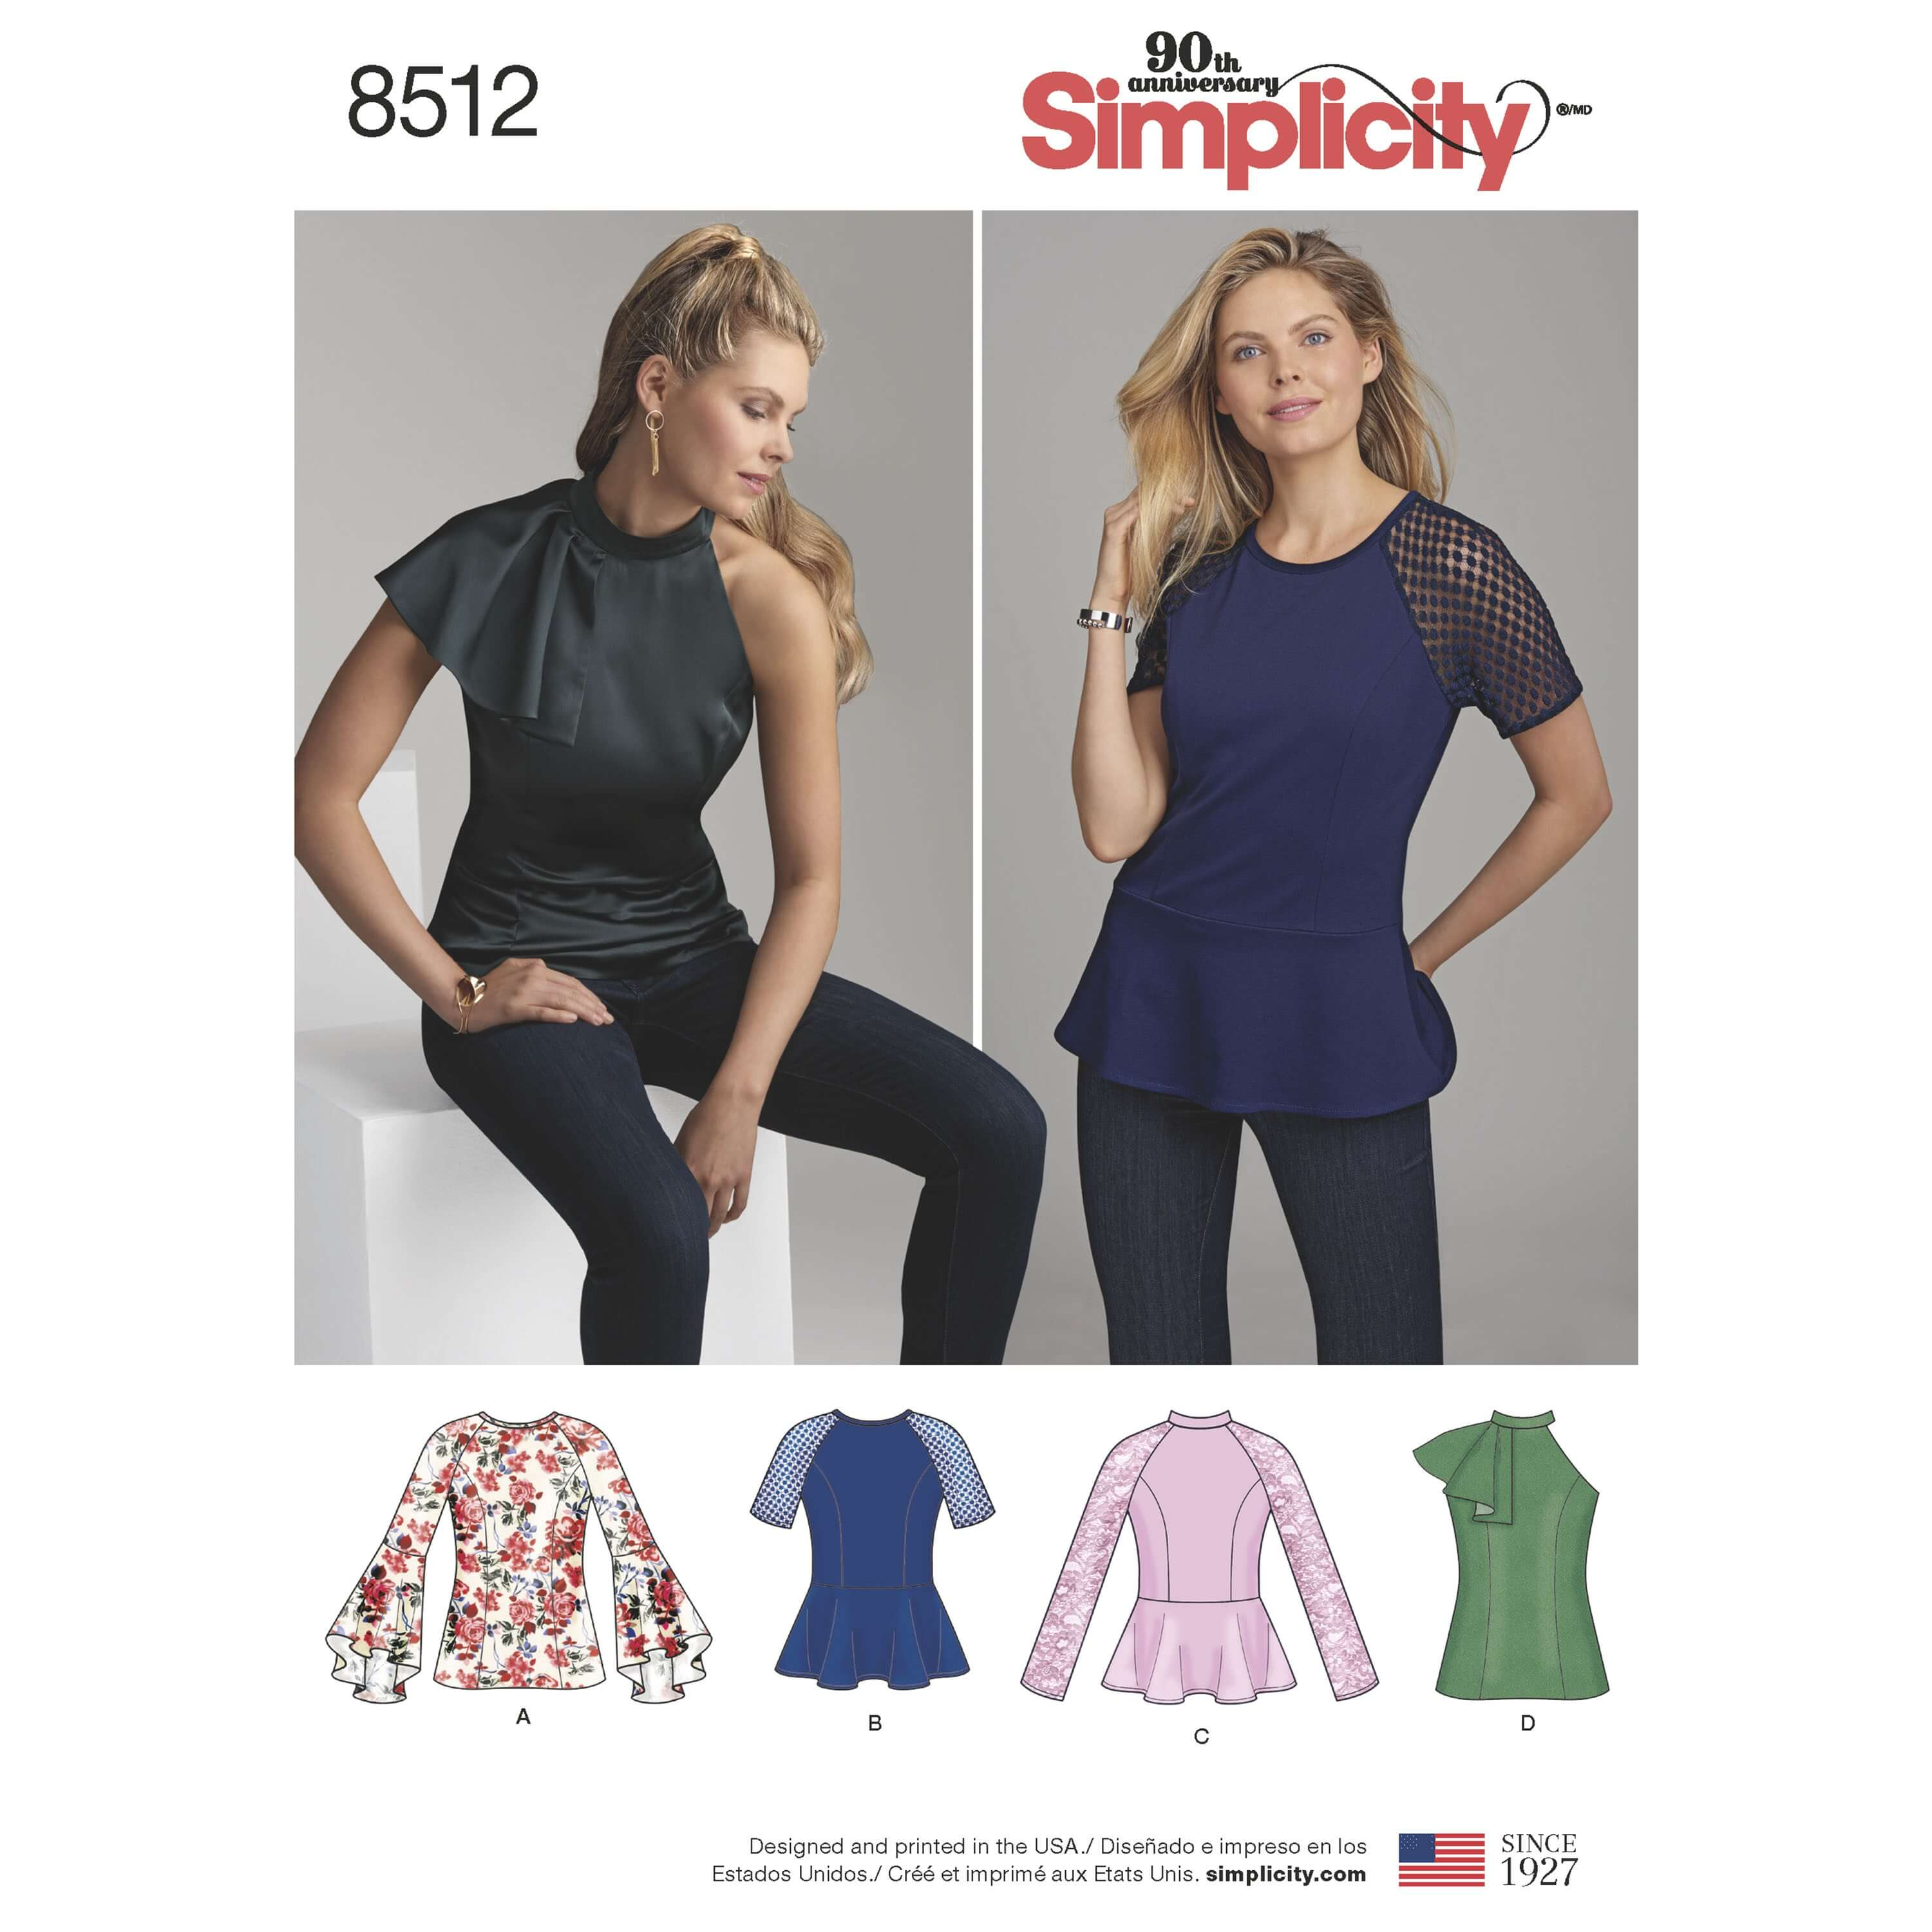 Simplicity Sewing Pattern 8512 Women's Peplum Top with Sleeve Options